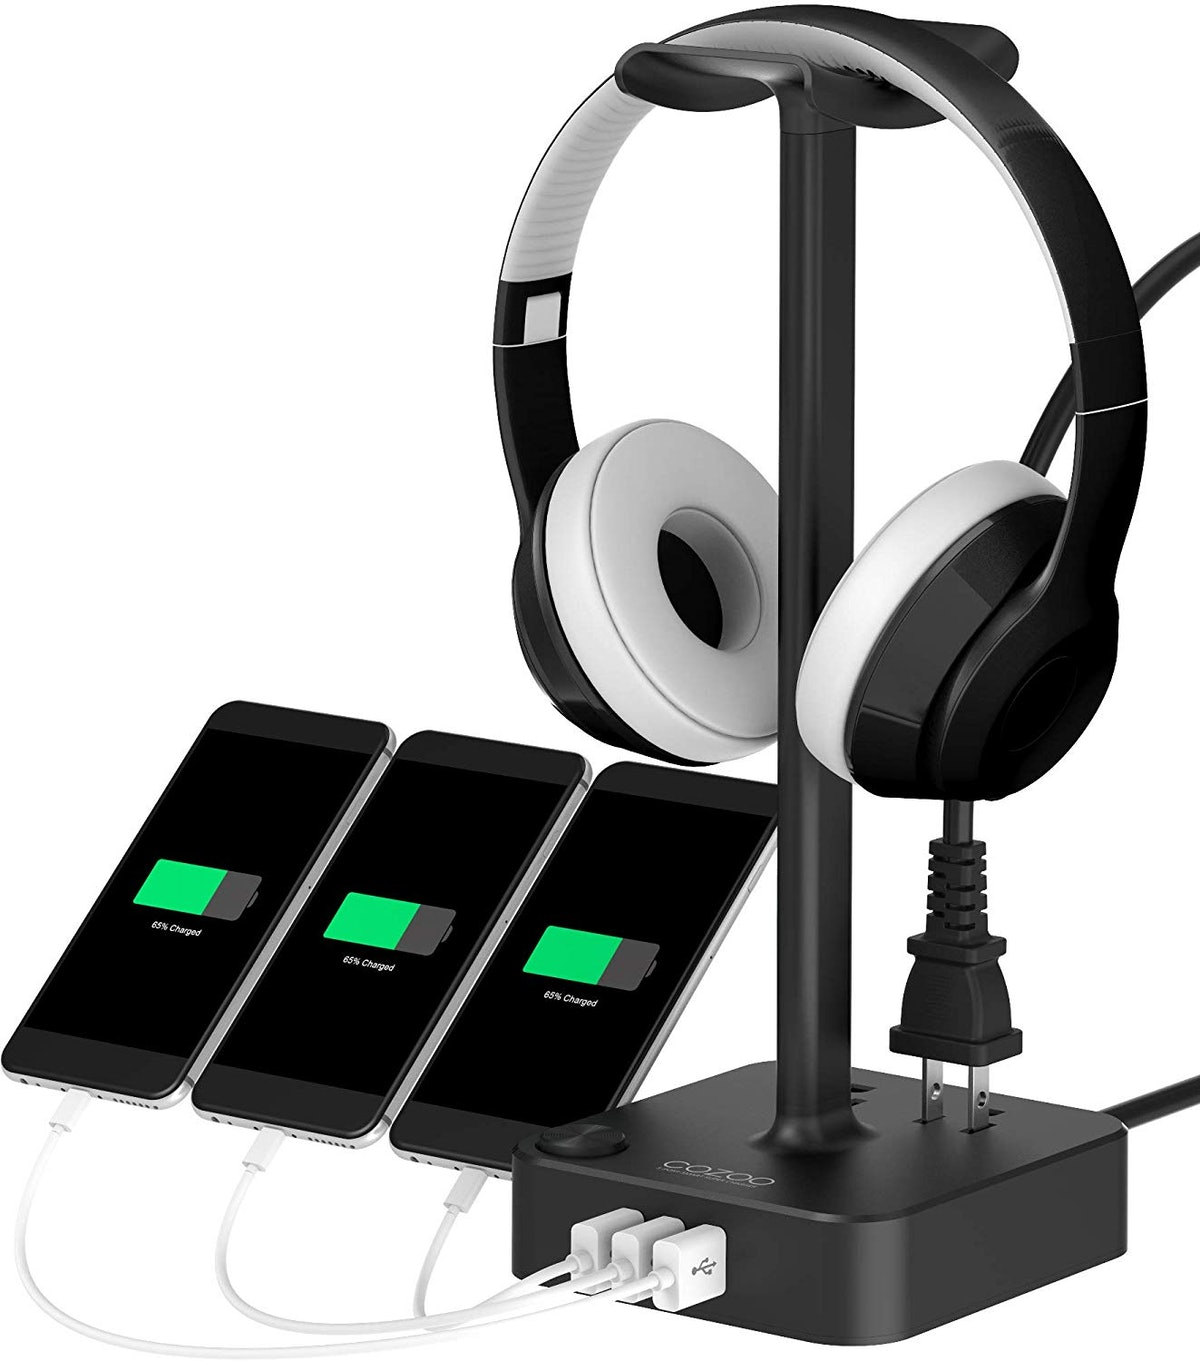 Head Phone Stand with USB Charger